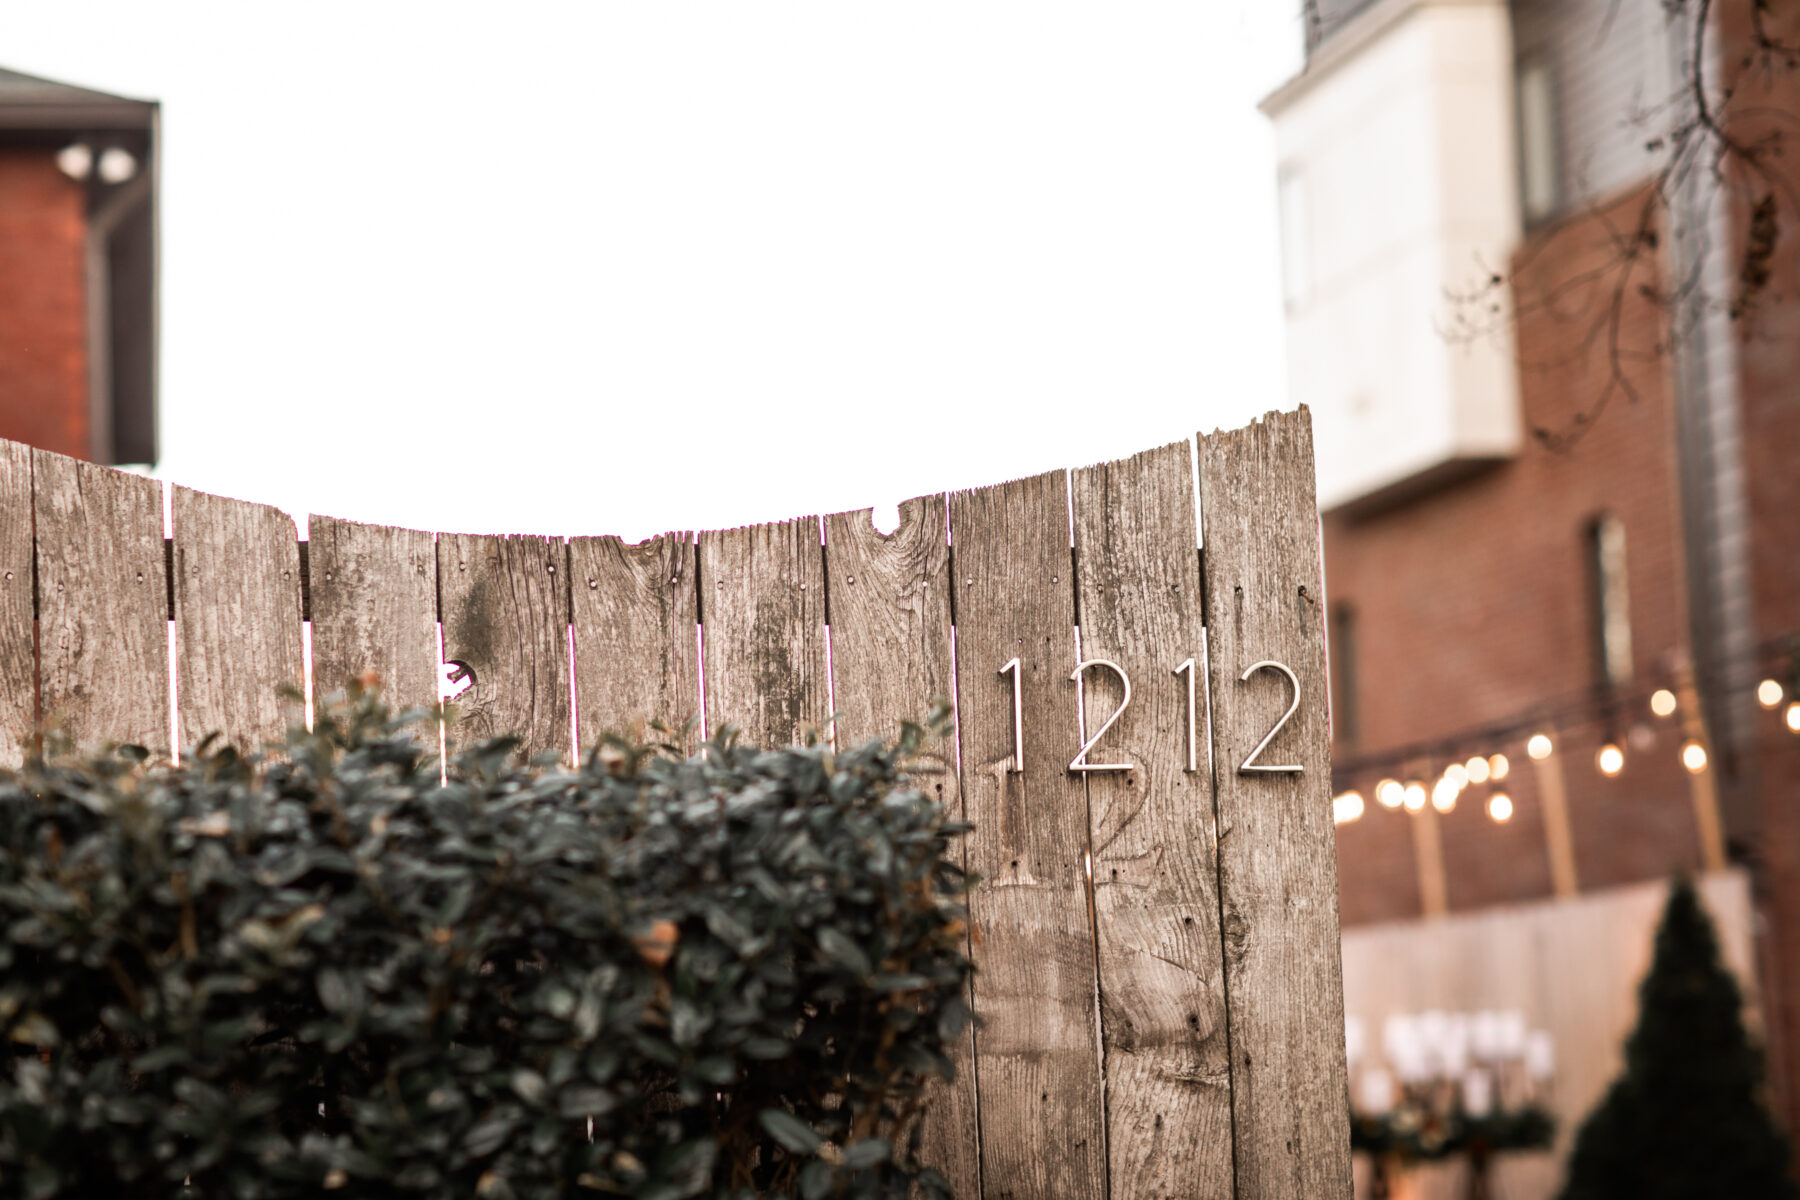 1212 Germantown: Nashville Wish Upon a Wedding captured by Nyk + Cali Photography featured on Nashville Bride Guide